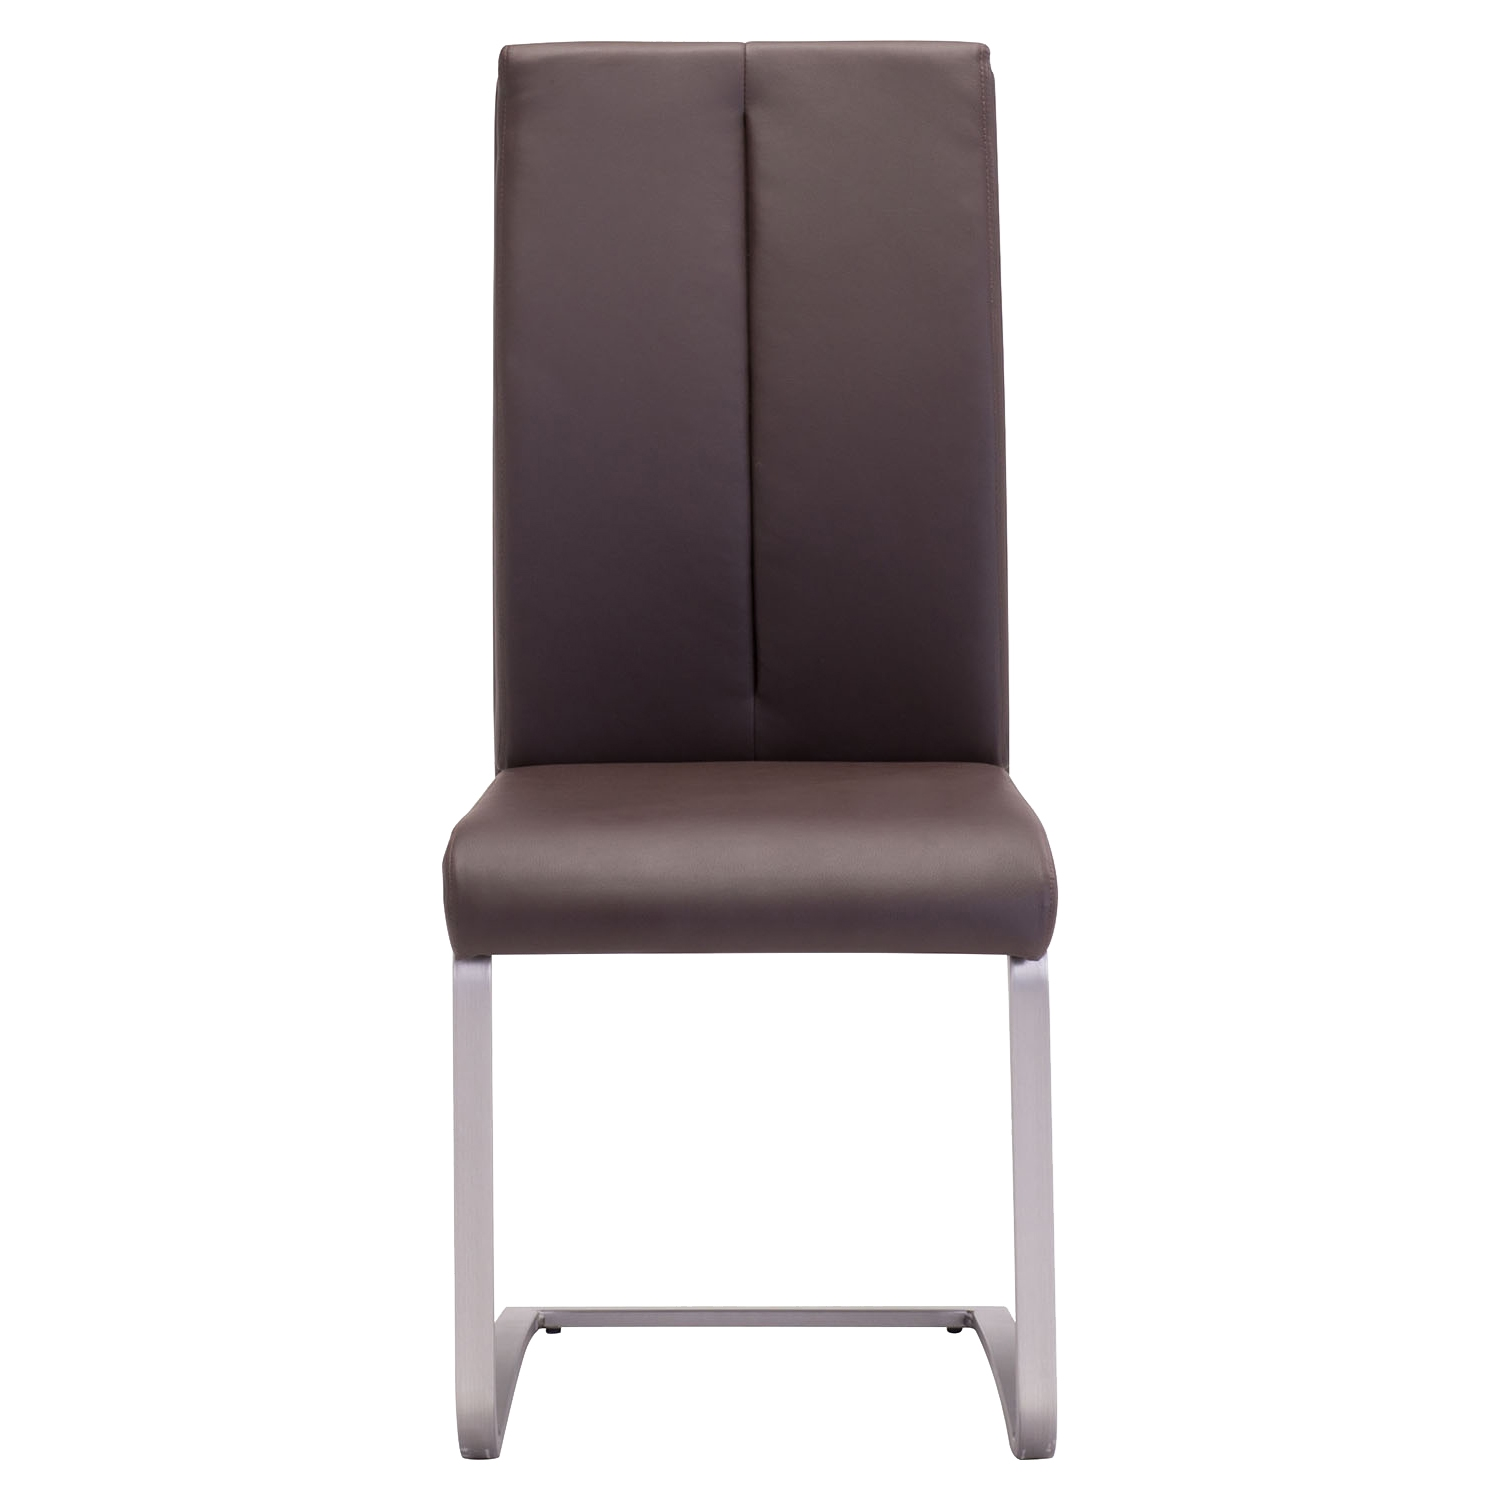 Rosemont Dining Chair - Brown - ZM-100137